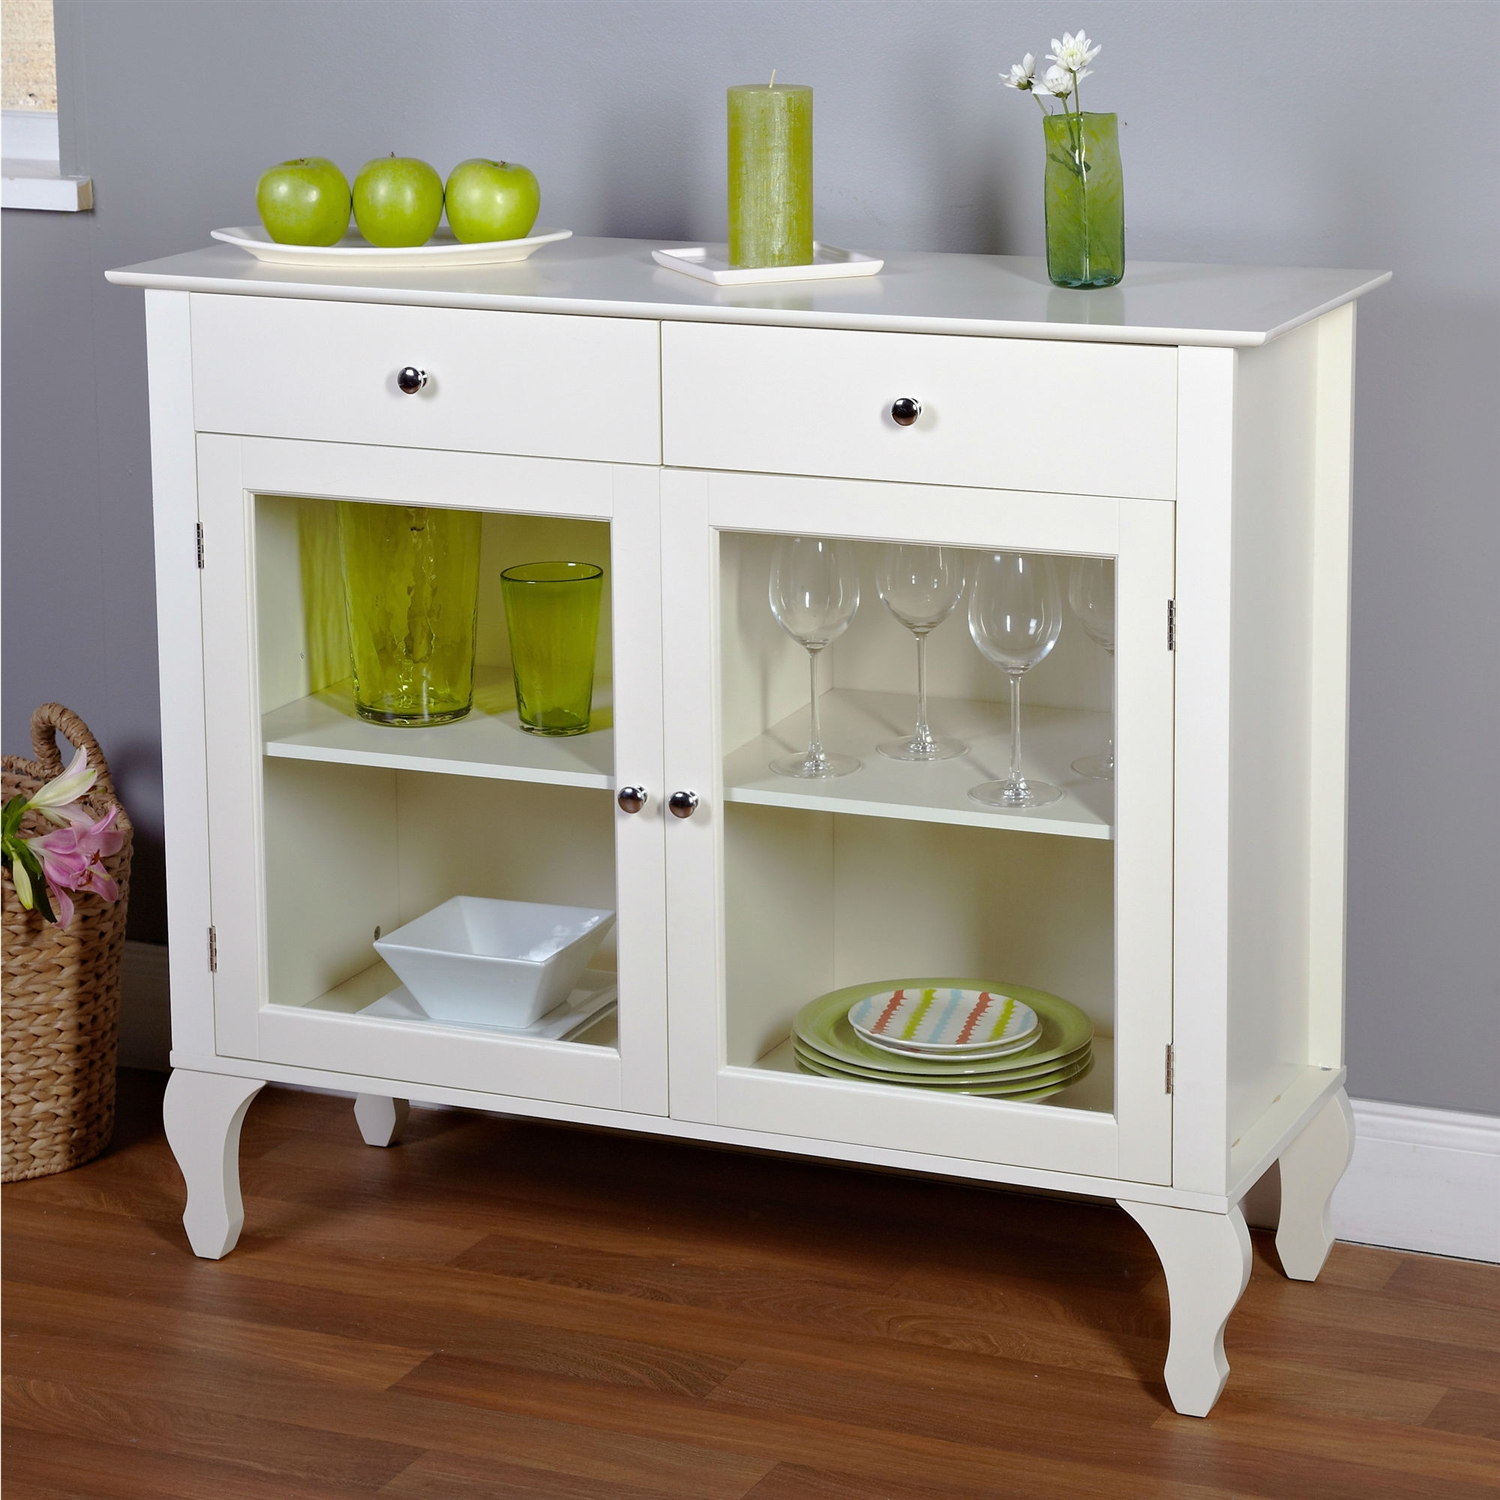 Antique White Sideboard Buffet Console Table With Glass